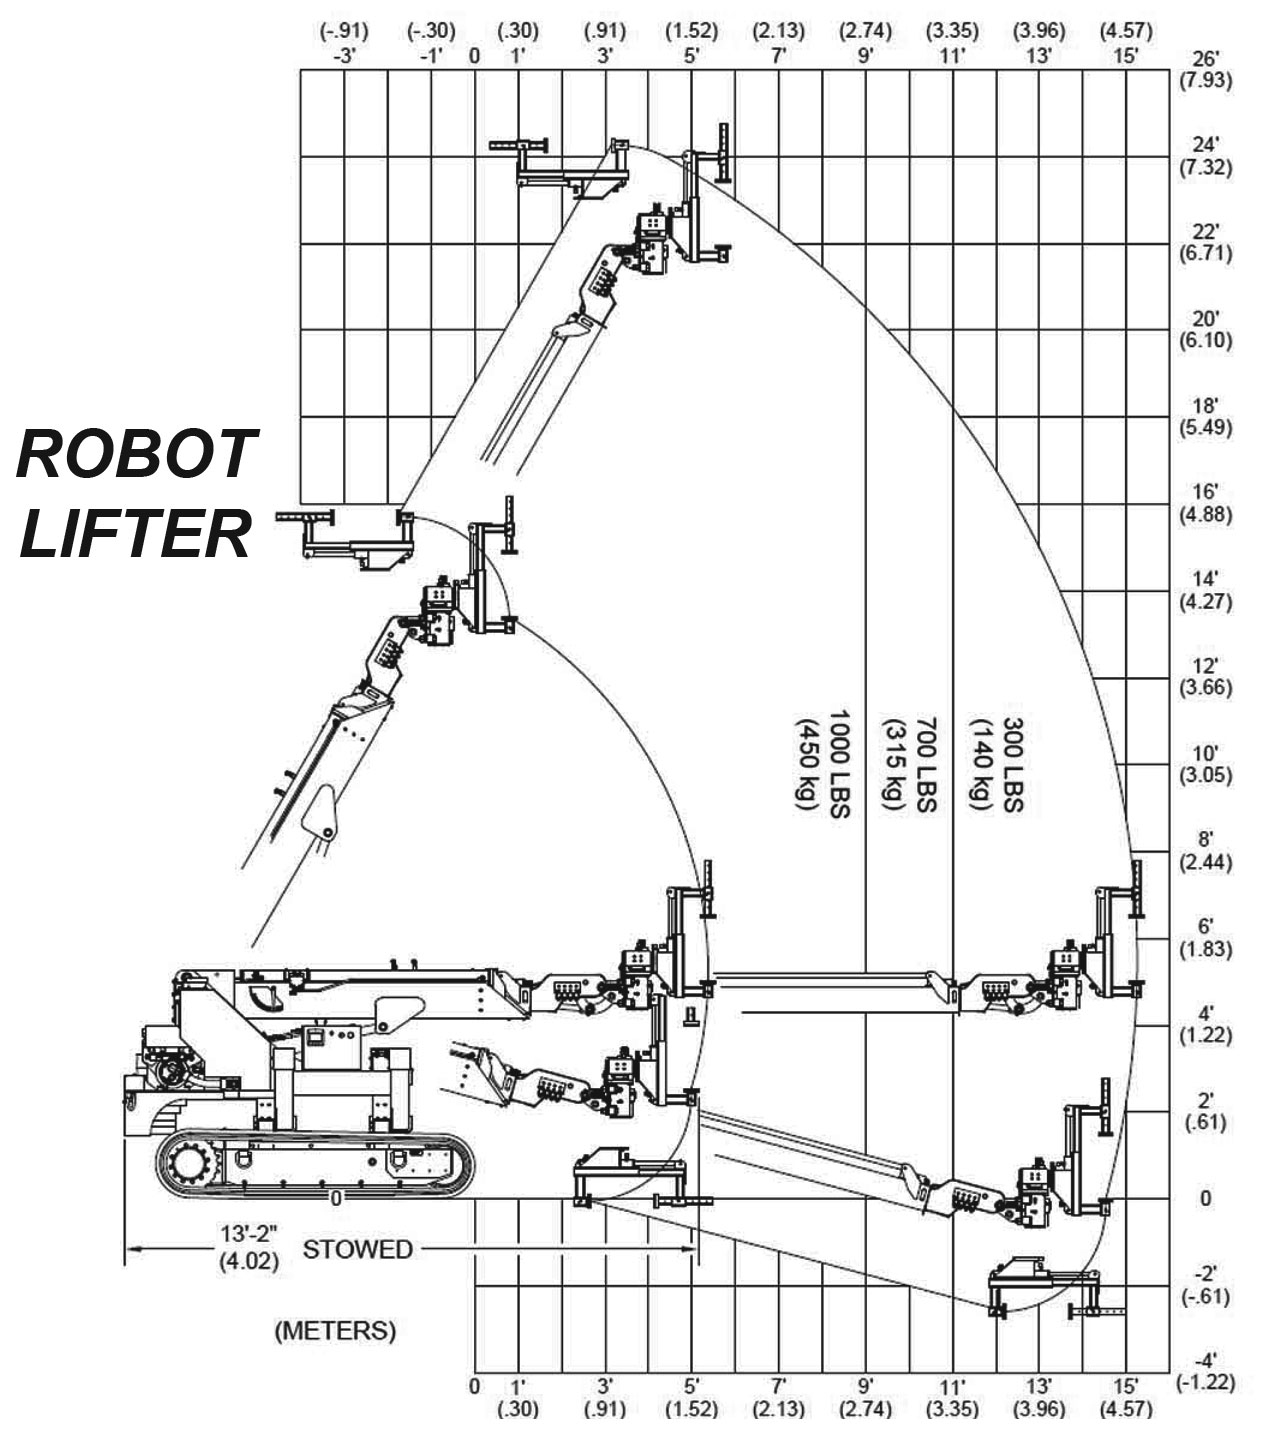 Brandon Trax Robot Lifter Load Capacity